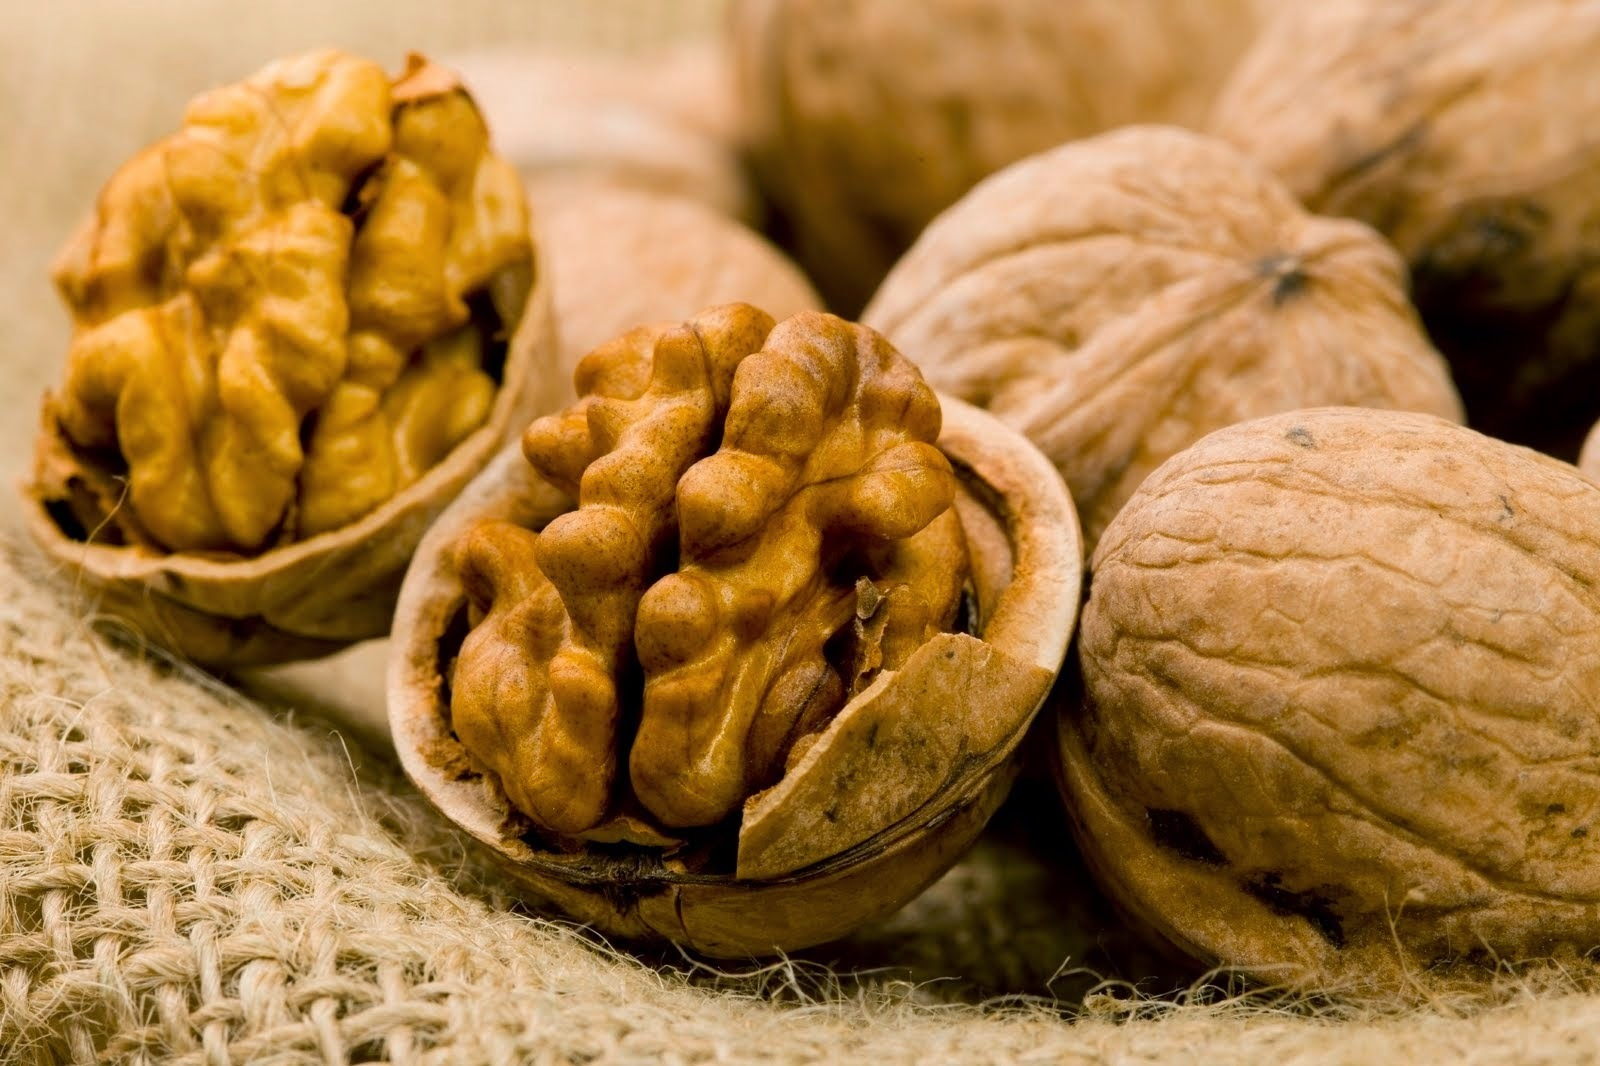 Walnuts- 'The World's most healthiest food'